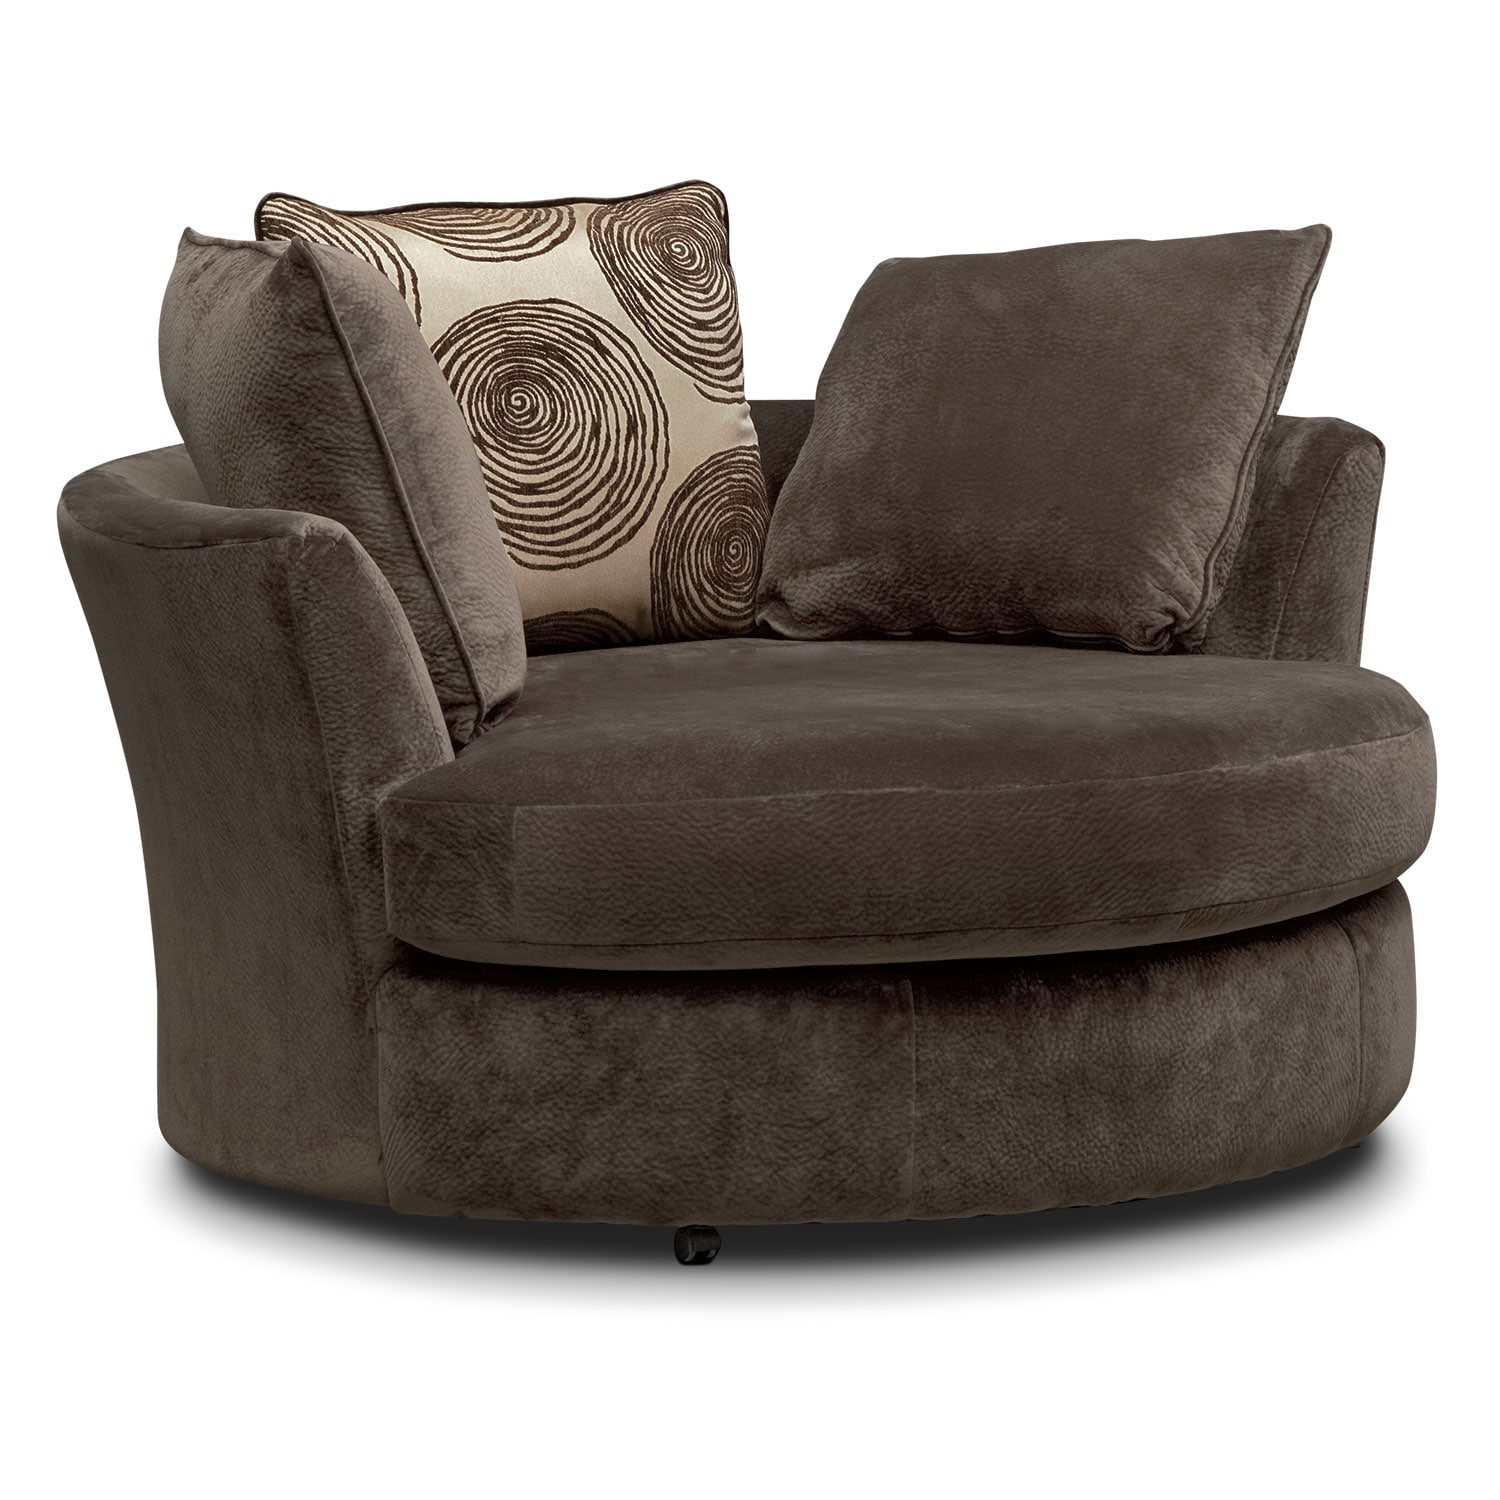 Living Room Furniture - Cordelle Swivel Chair - Chocolate